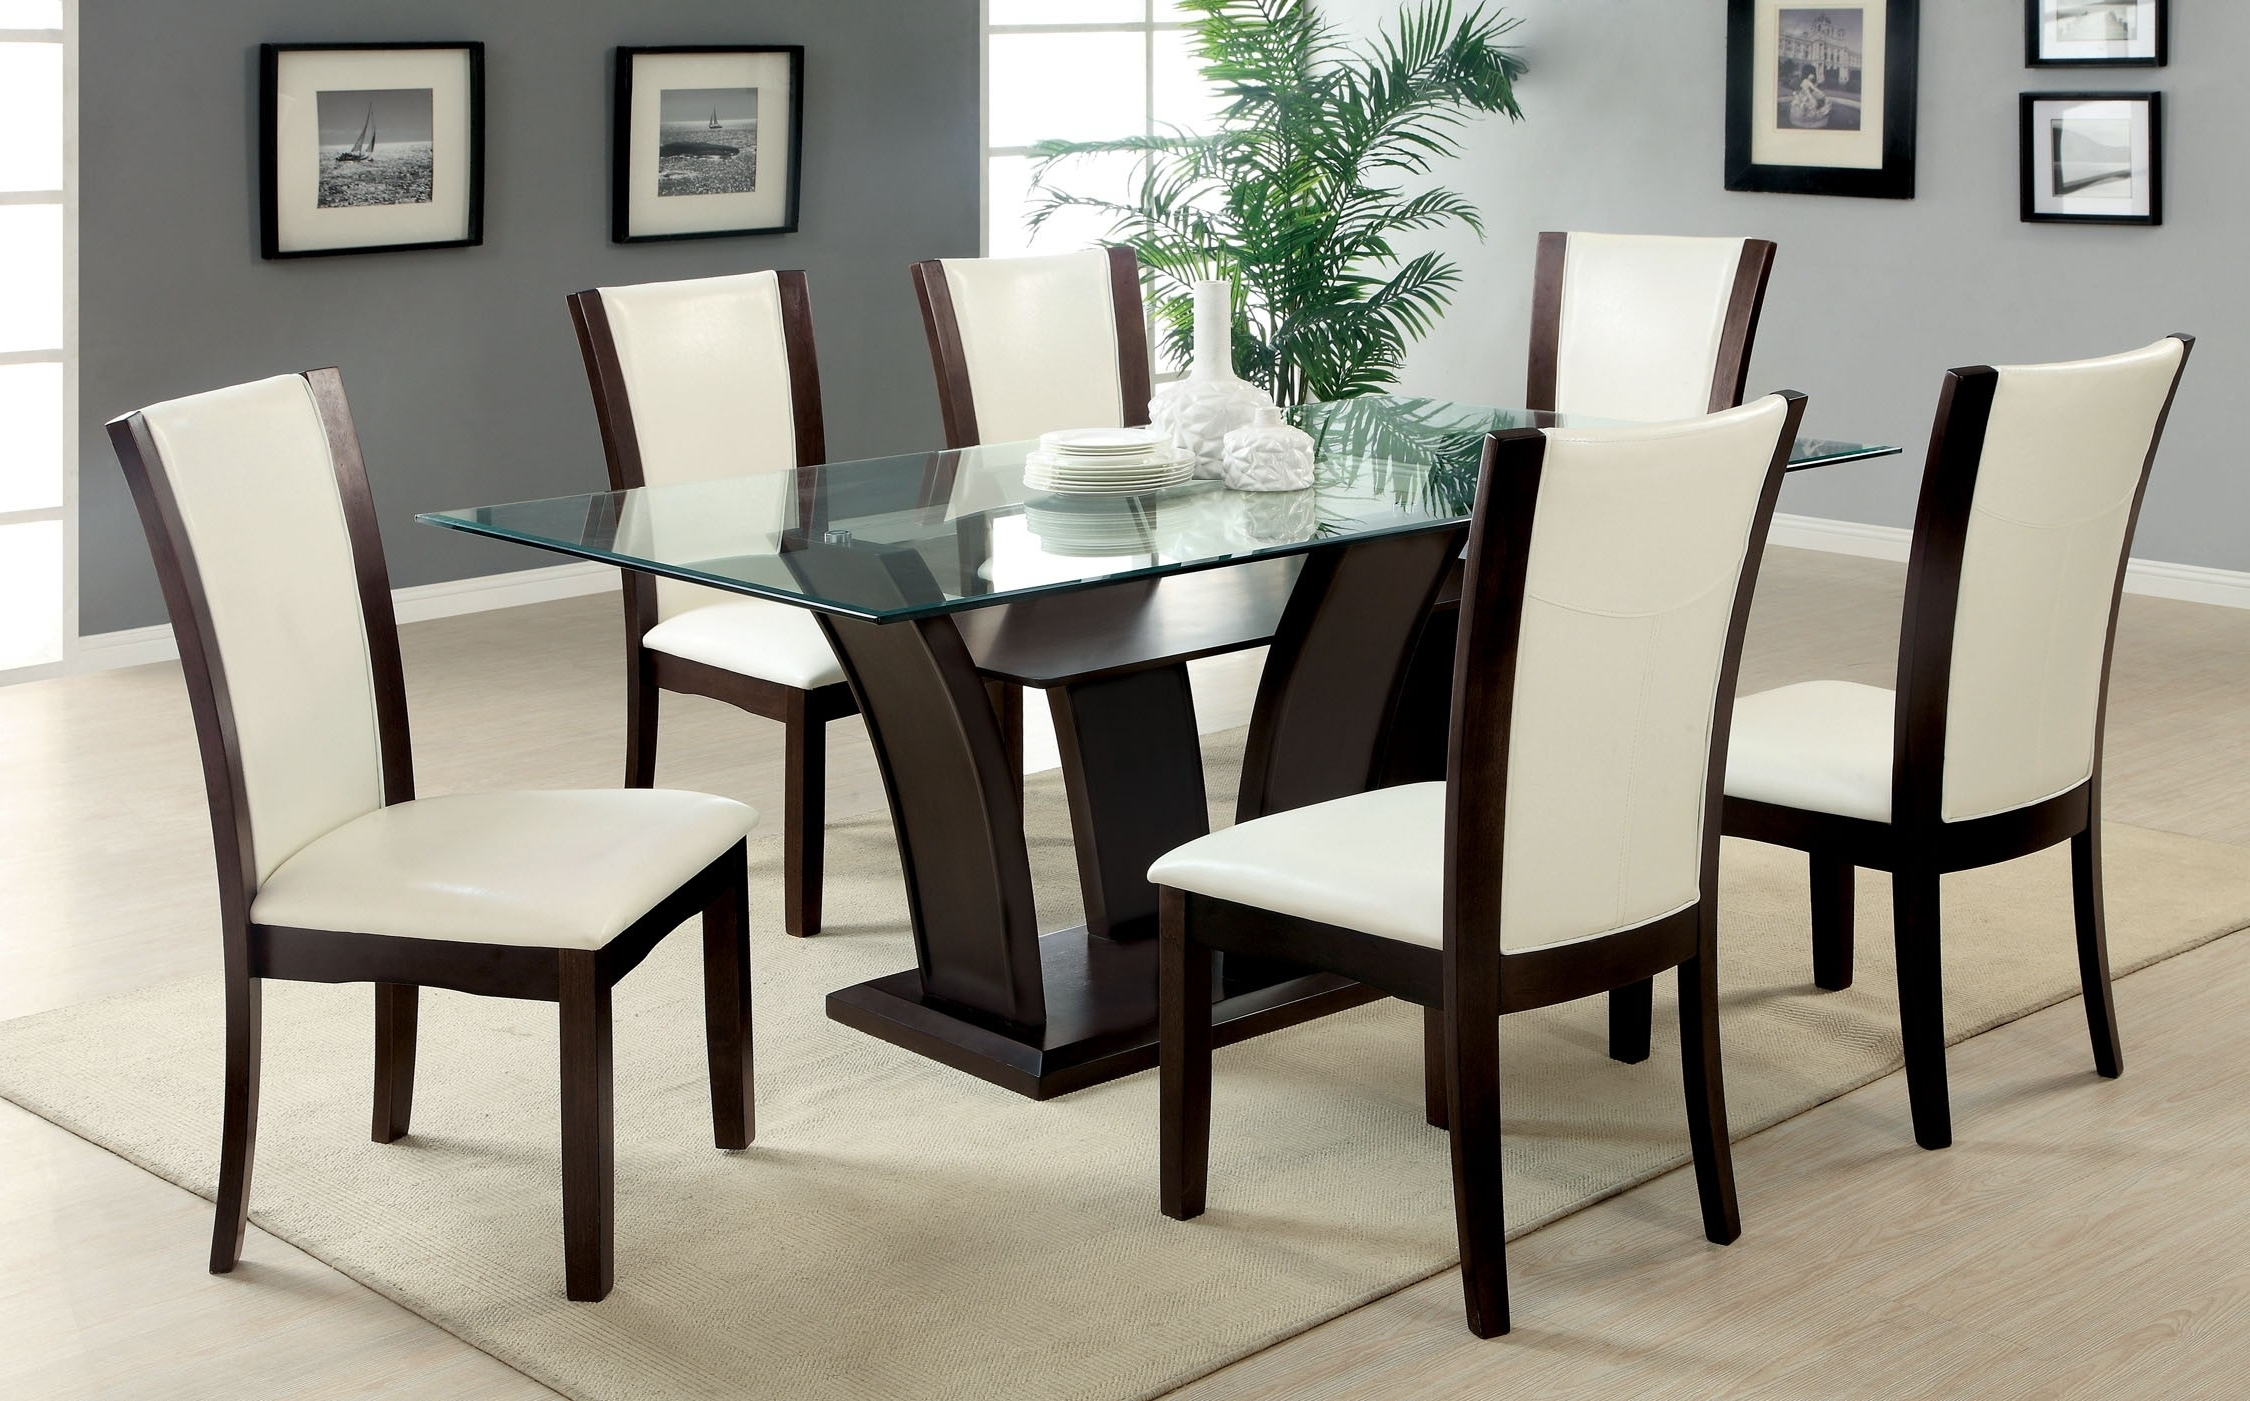 Preferred 6 Seat Dining Table Sets Throughout 6 Seater Glass Dining Table Sets • Table Setting Ideas (View 15 of 25)